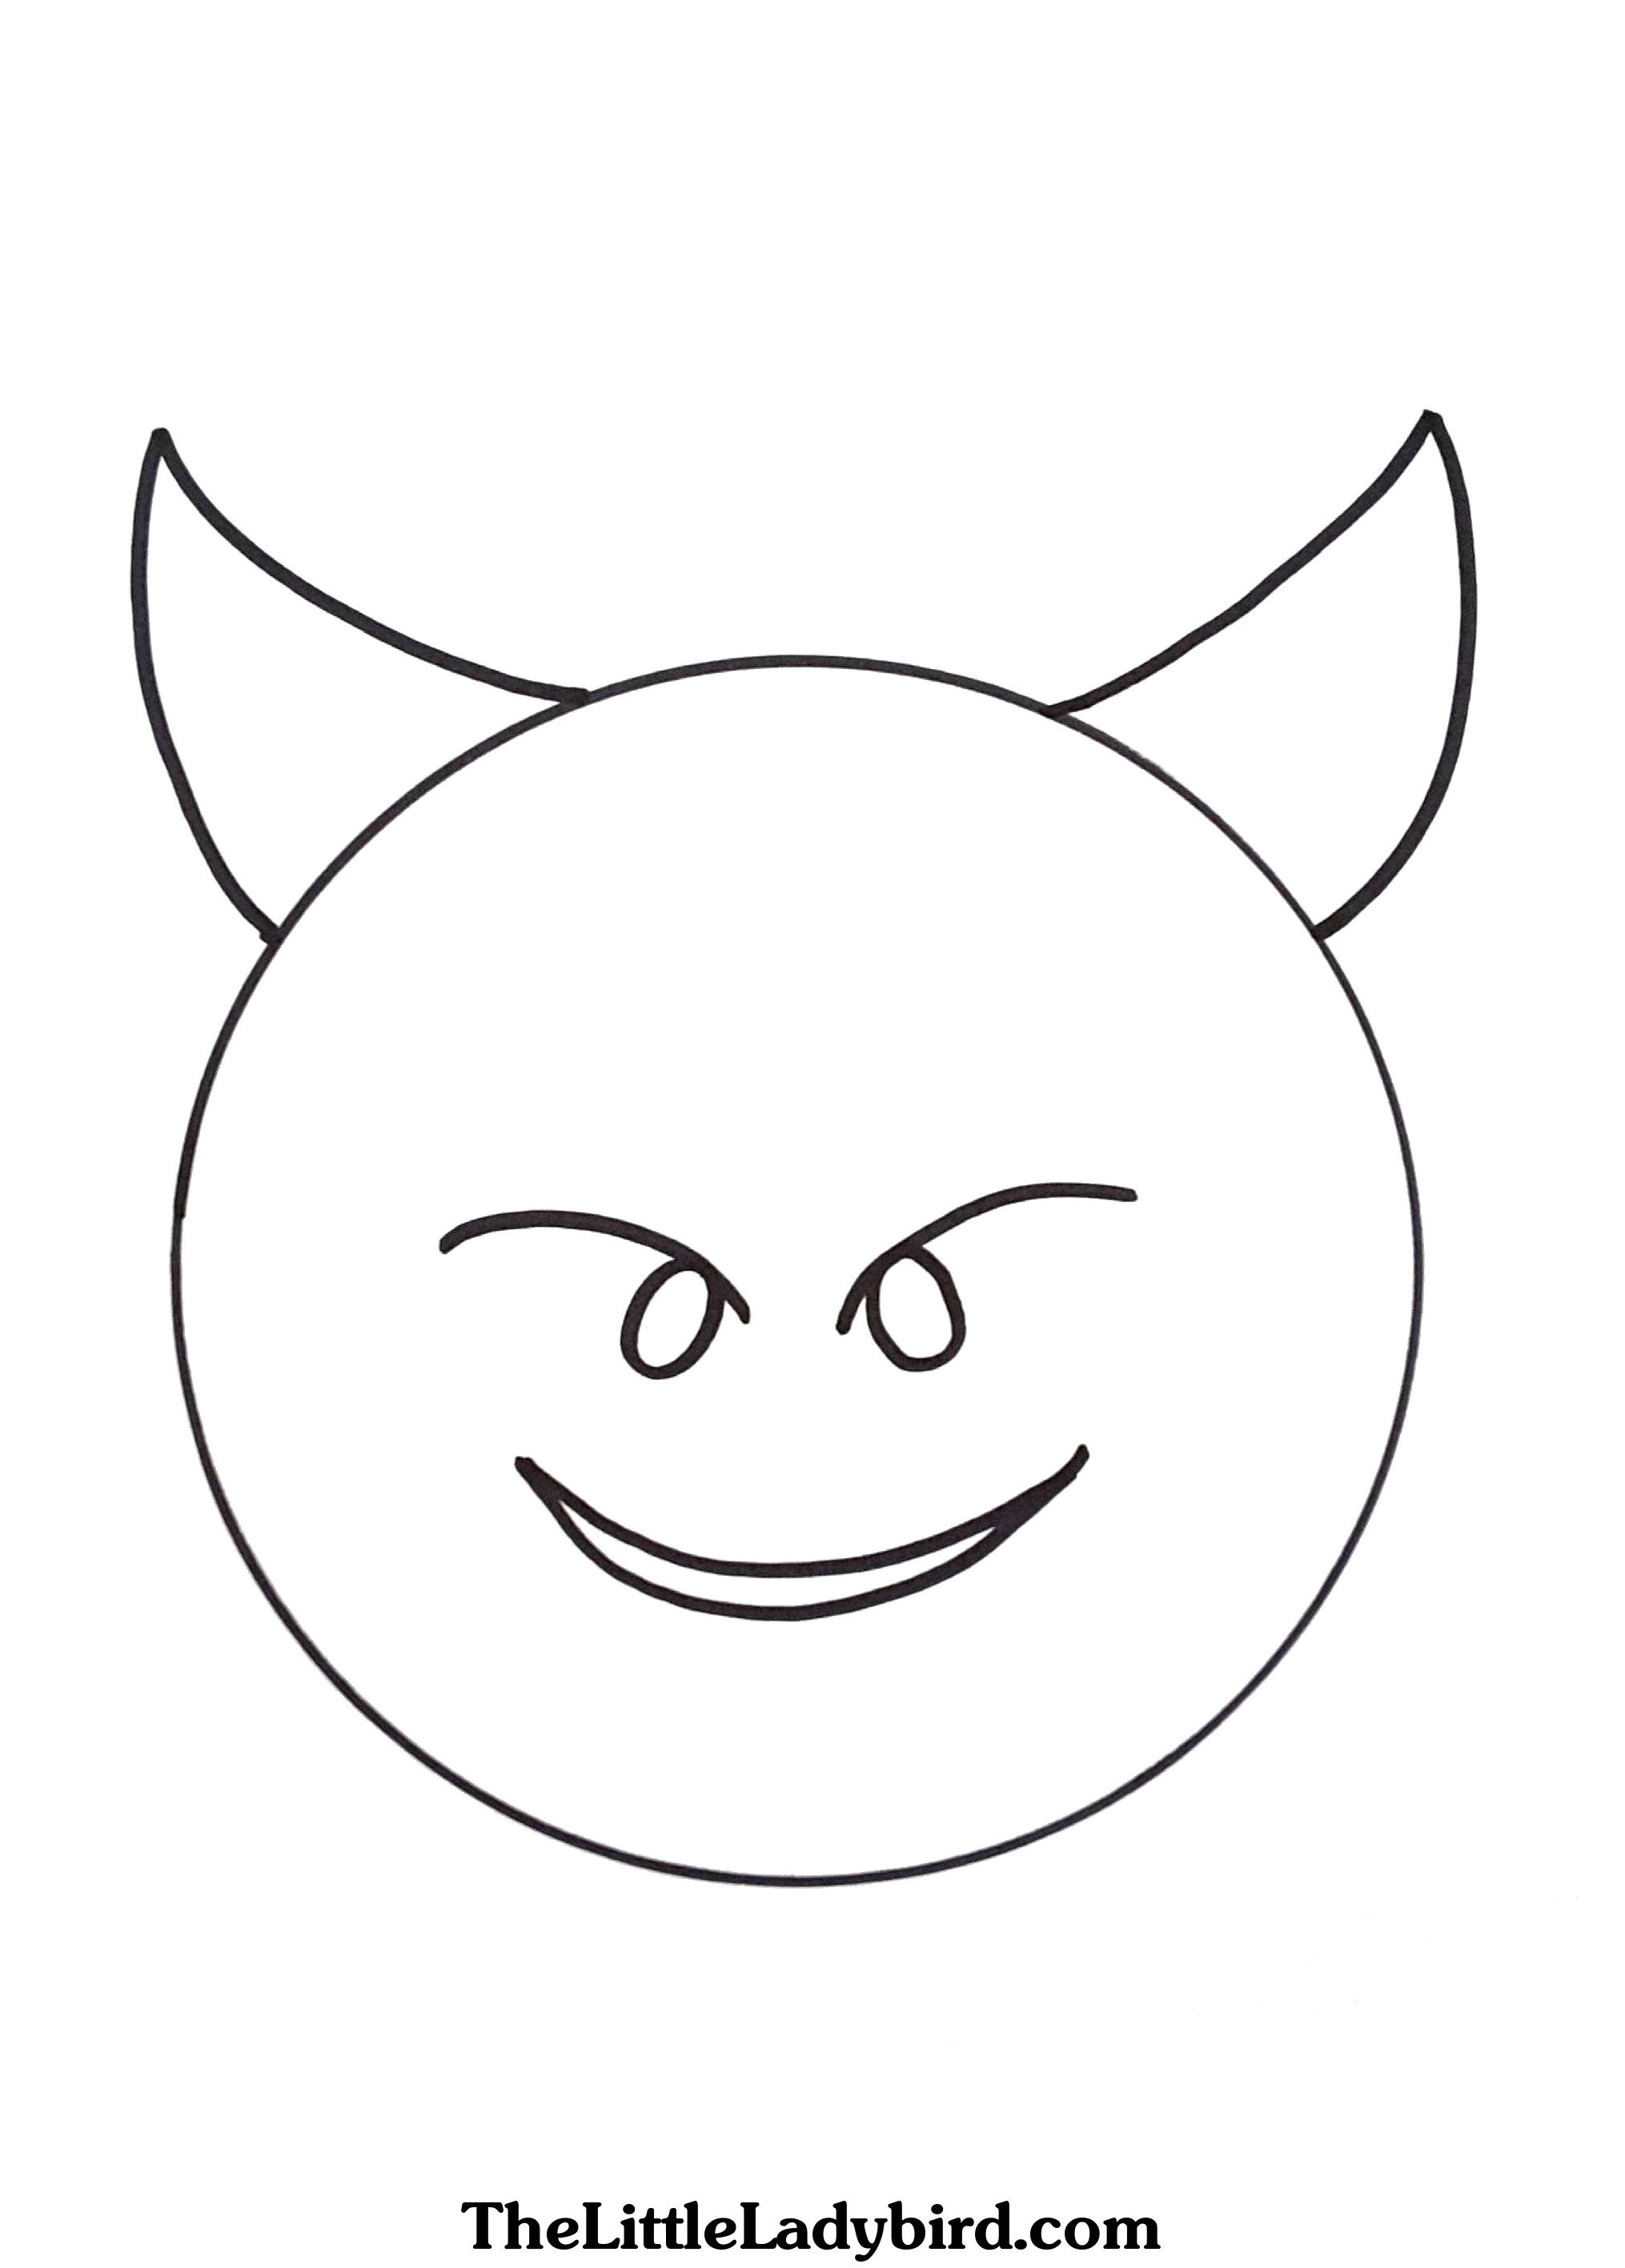 2030x2834 Reduced Poop Emoji Coloring Page How To Draw P